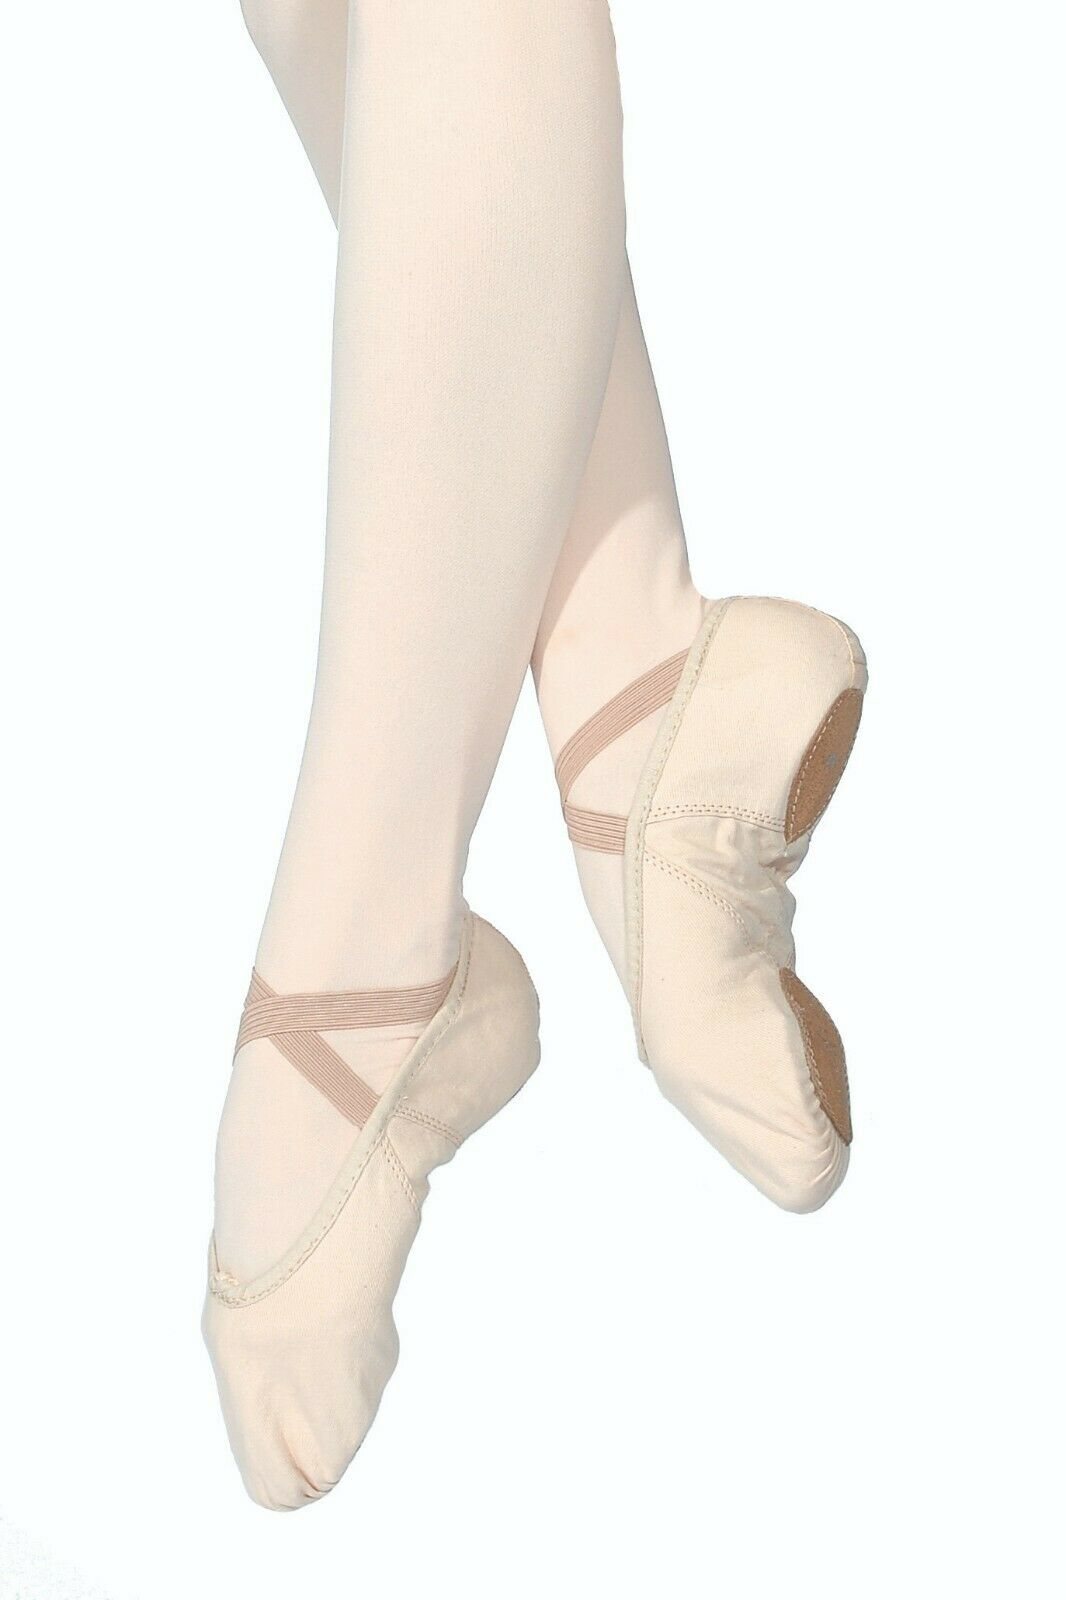 Canvas premium ballet shoes pink by Roch Valley canvas upper, leather sole. 9c-8